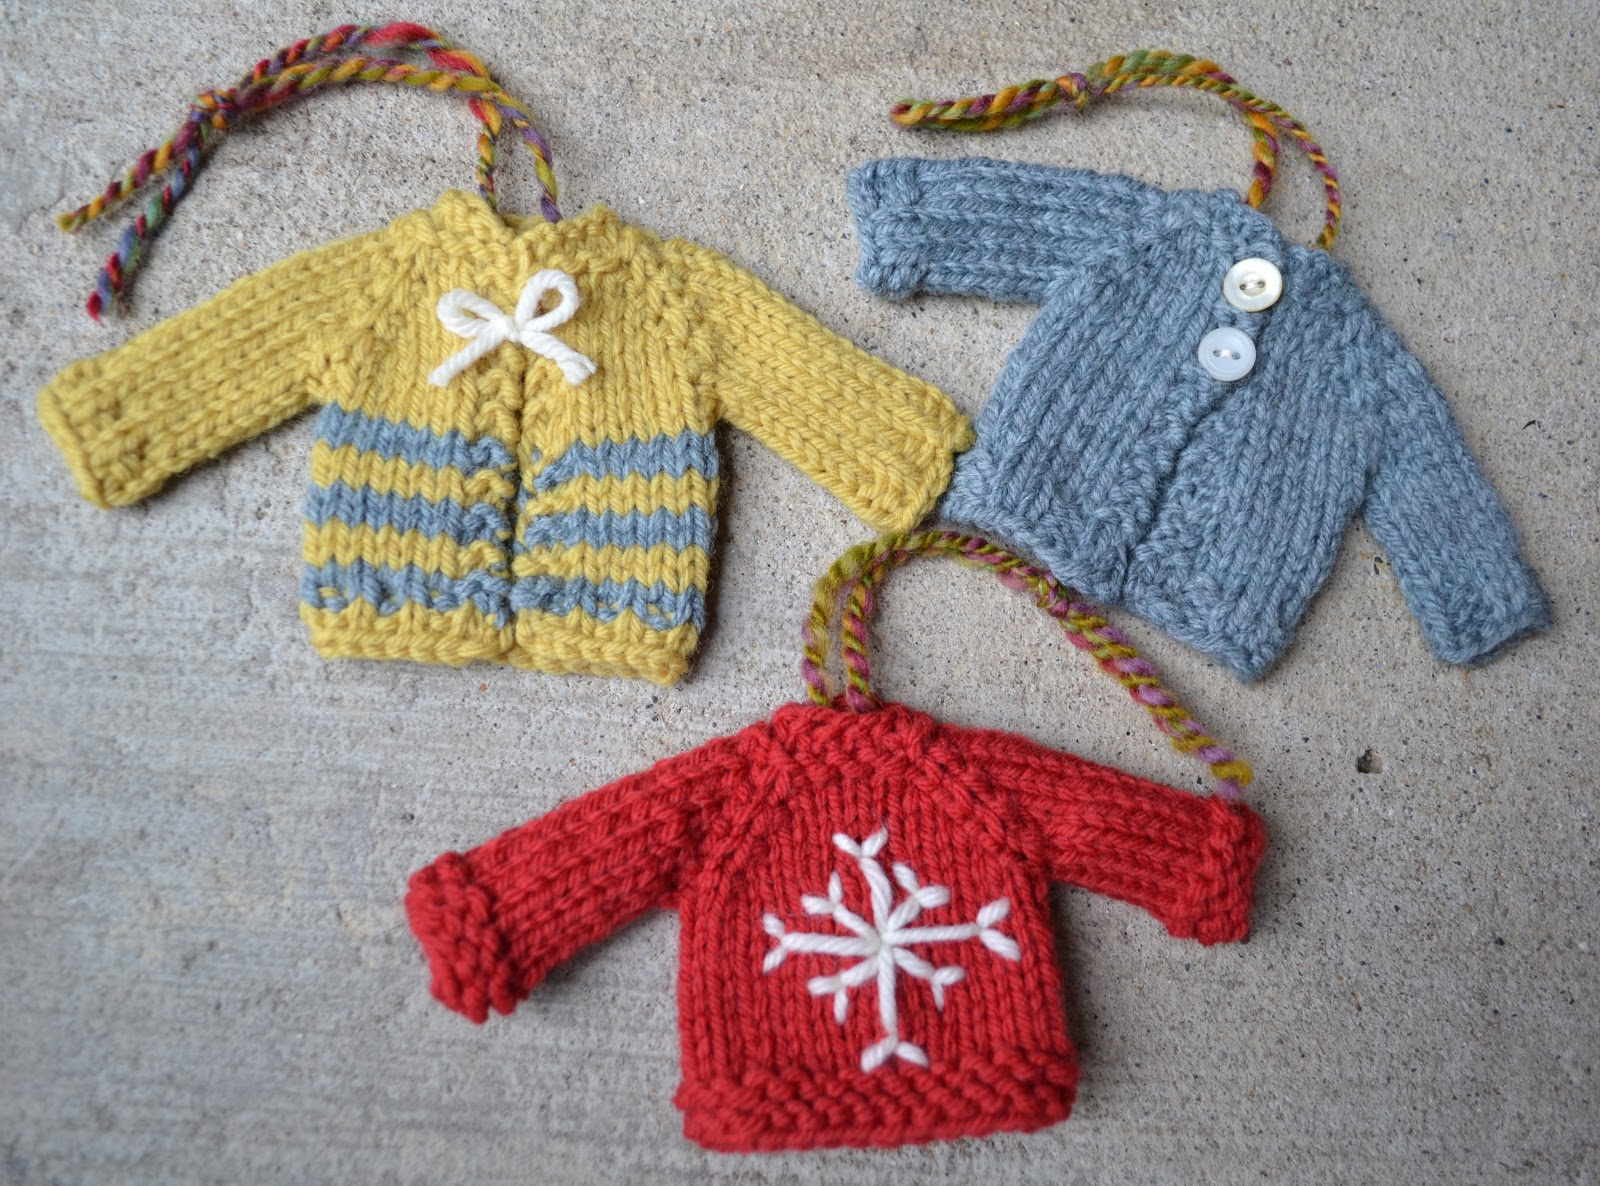 Knit Pattern Sweater Ornament : Susan B. Anderson: Tiny Top-Down Pullover Sweater and ...